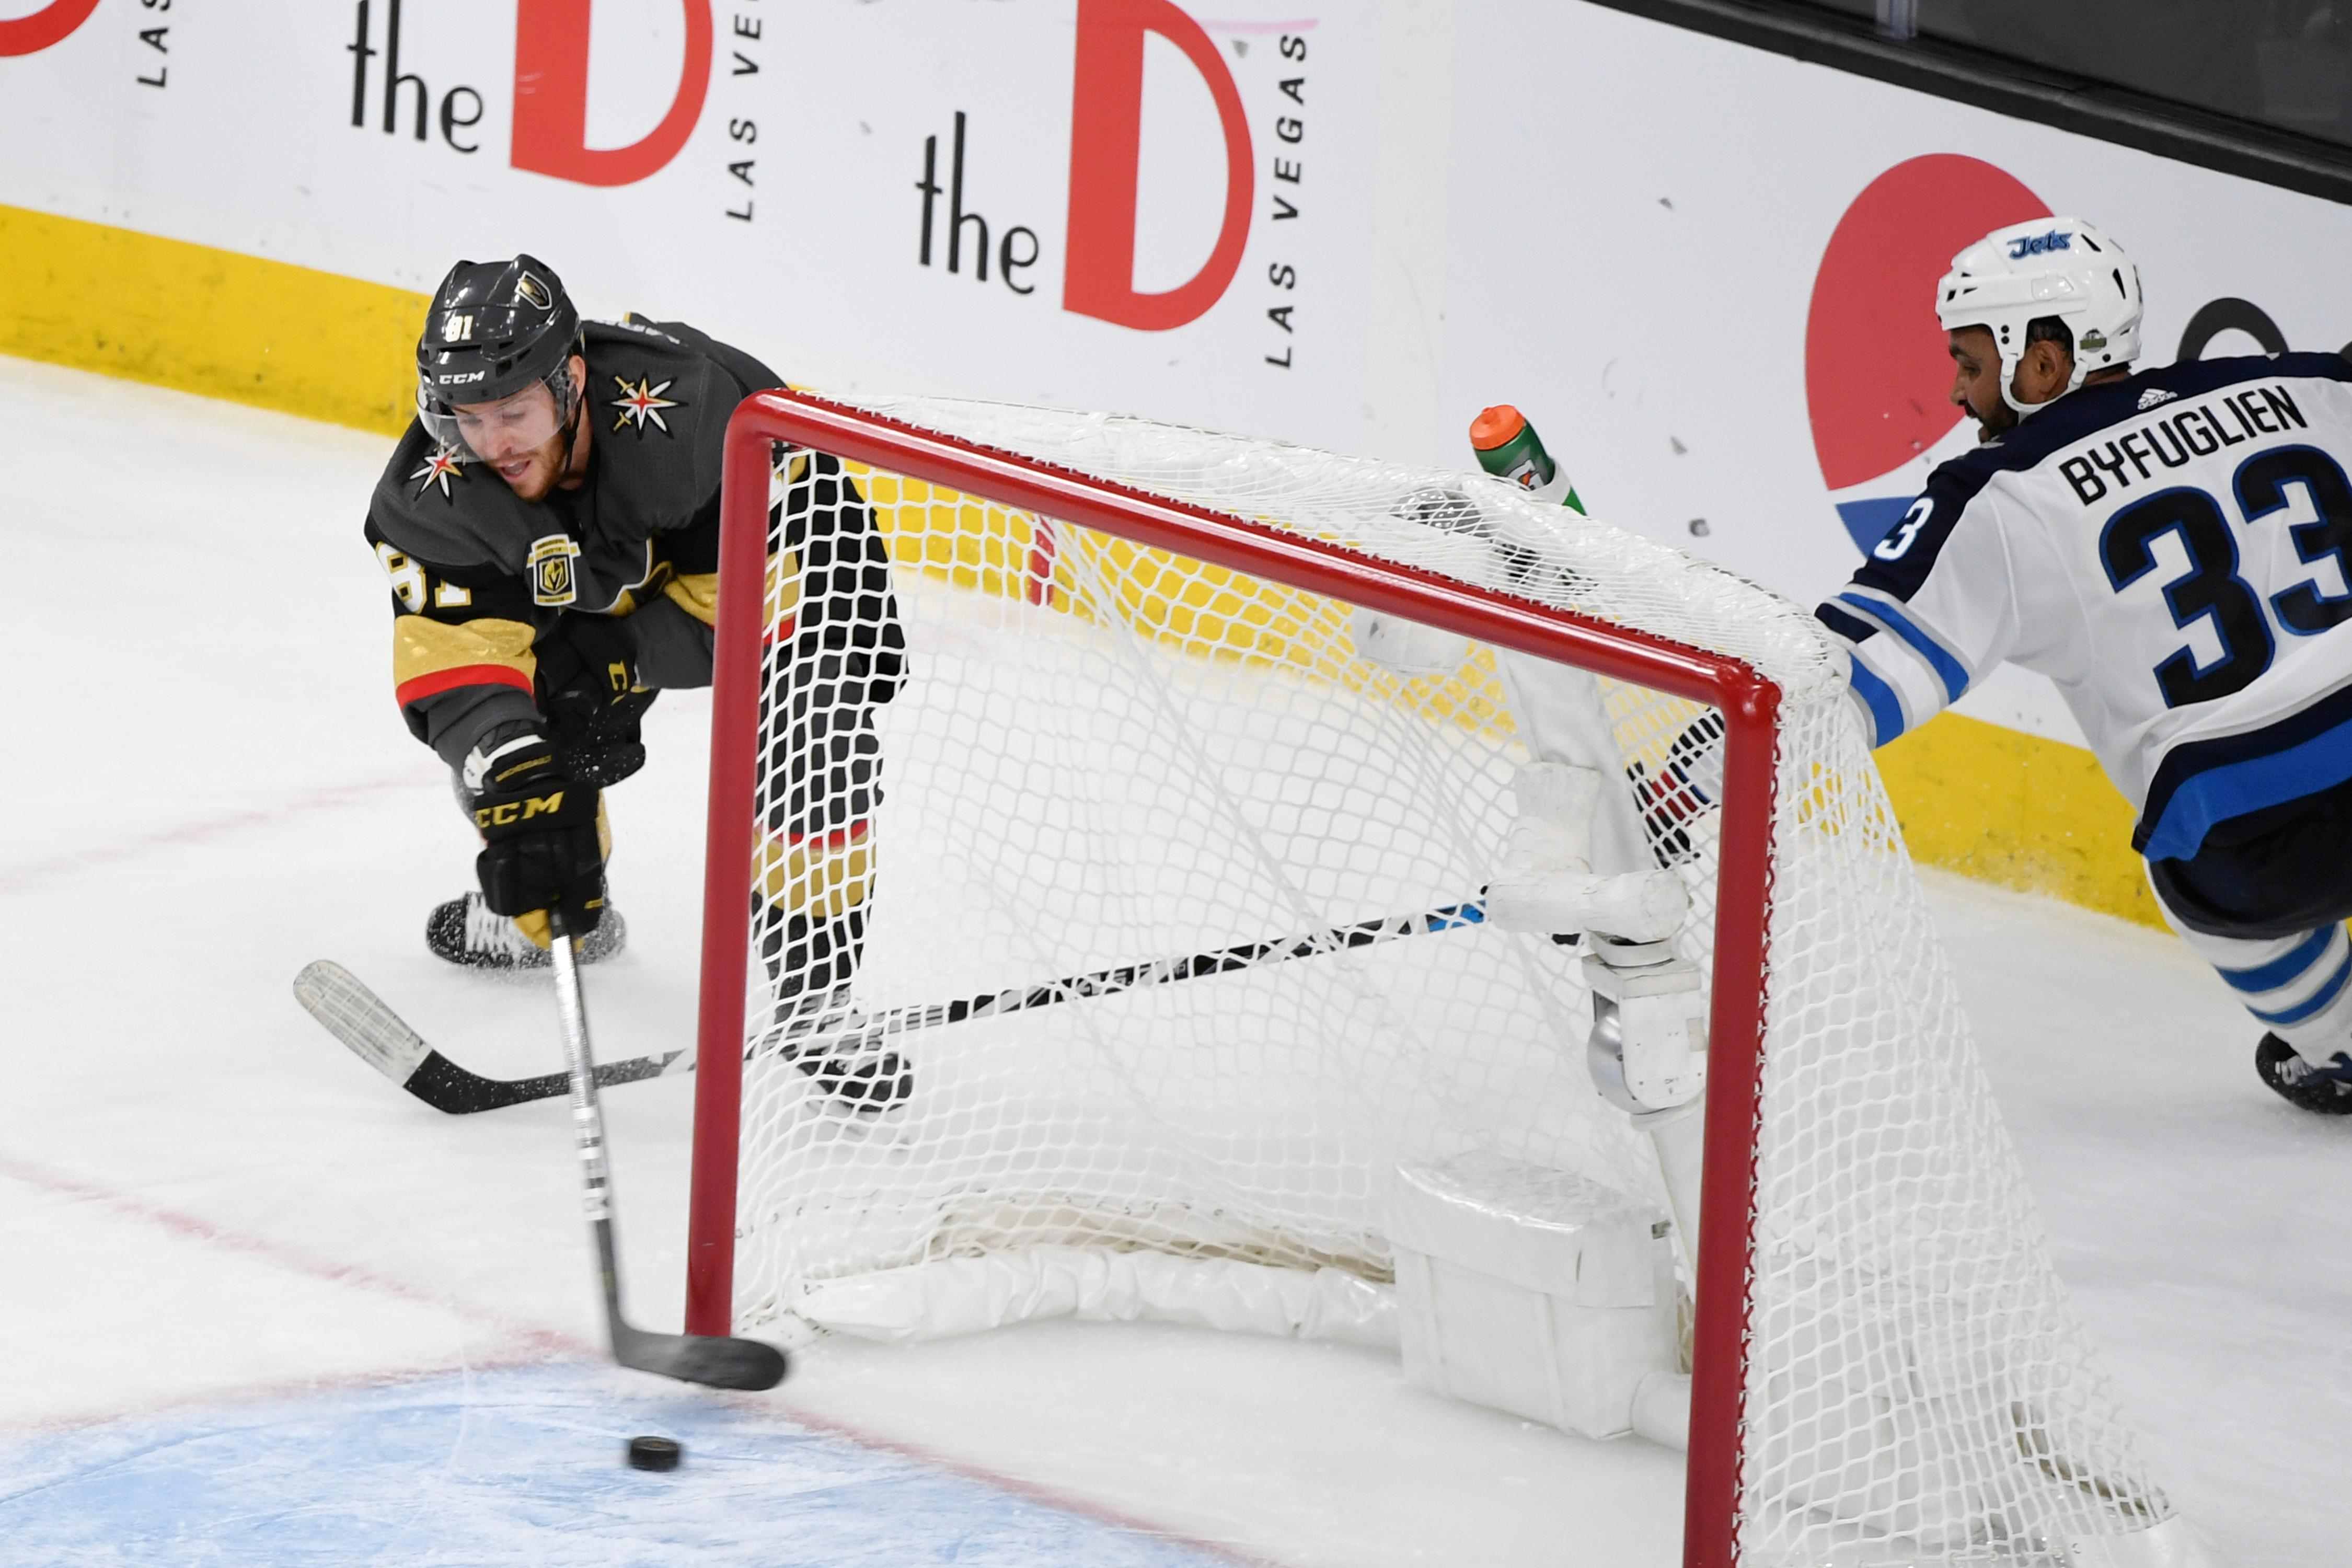 Vegas Golden Knights center Jonathan Marchessault (81) scores an empty net goal against the Winnipeg Jets during Game 3 of their NHL hockey Western Conference Final game Wednesday, May 16, 2018, at T-Mobile Arena. The Golden Knights won 4-2 to take a 2-1 lead in the series. CREDIT: Sam Morris/Las Vegas News Bureau